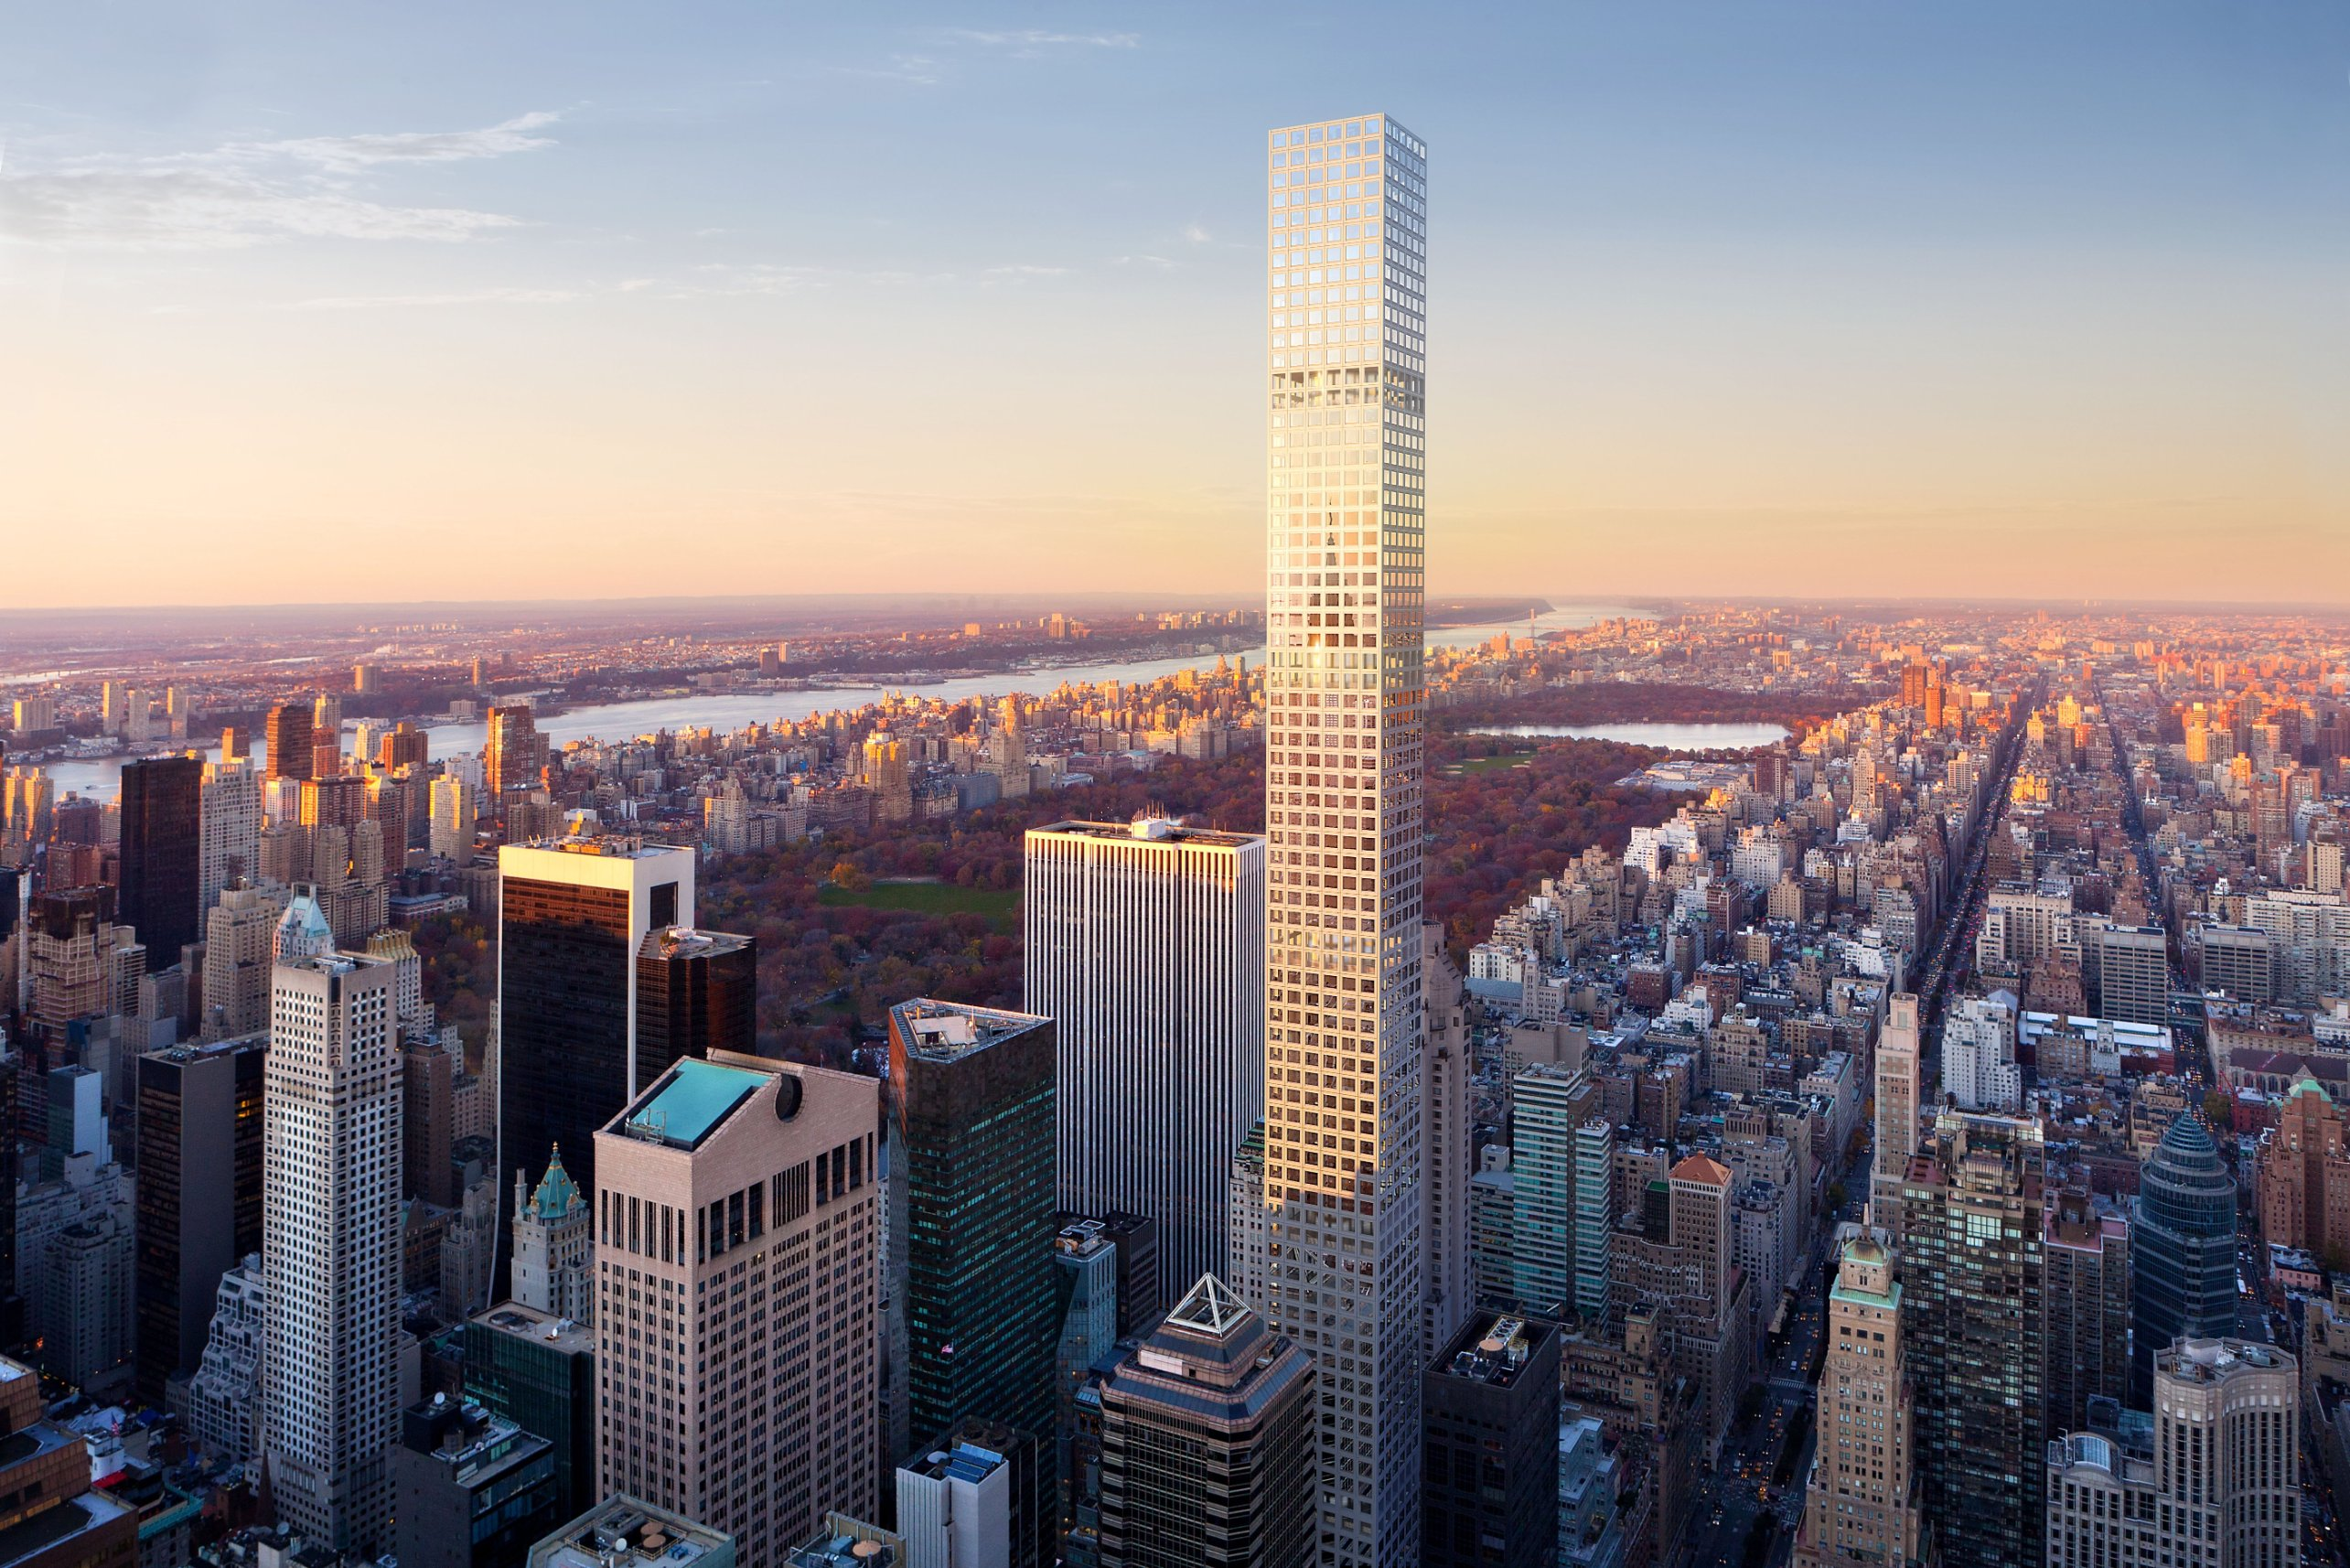 why we re obsessed with tall buildings cnn style